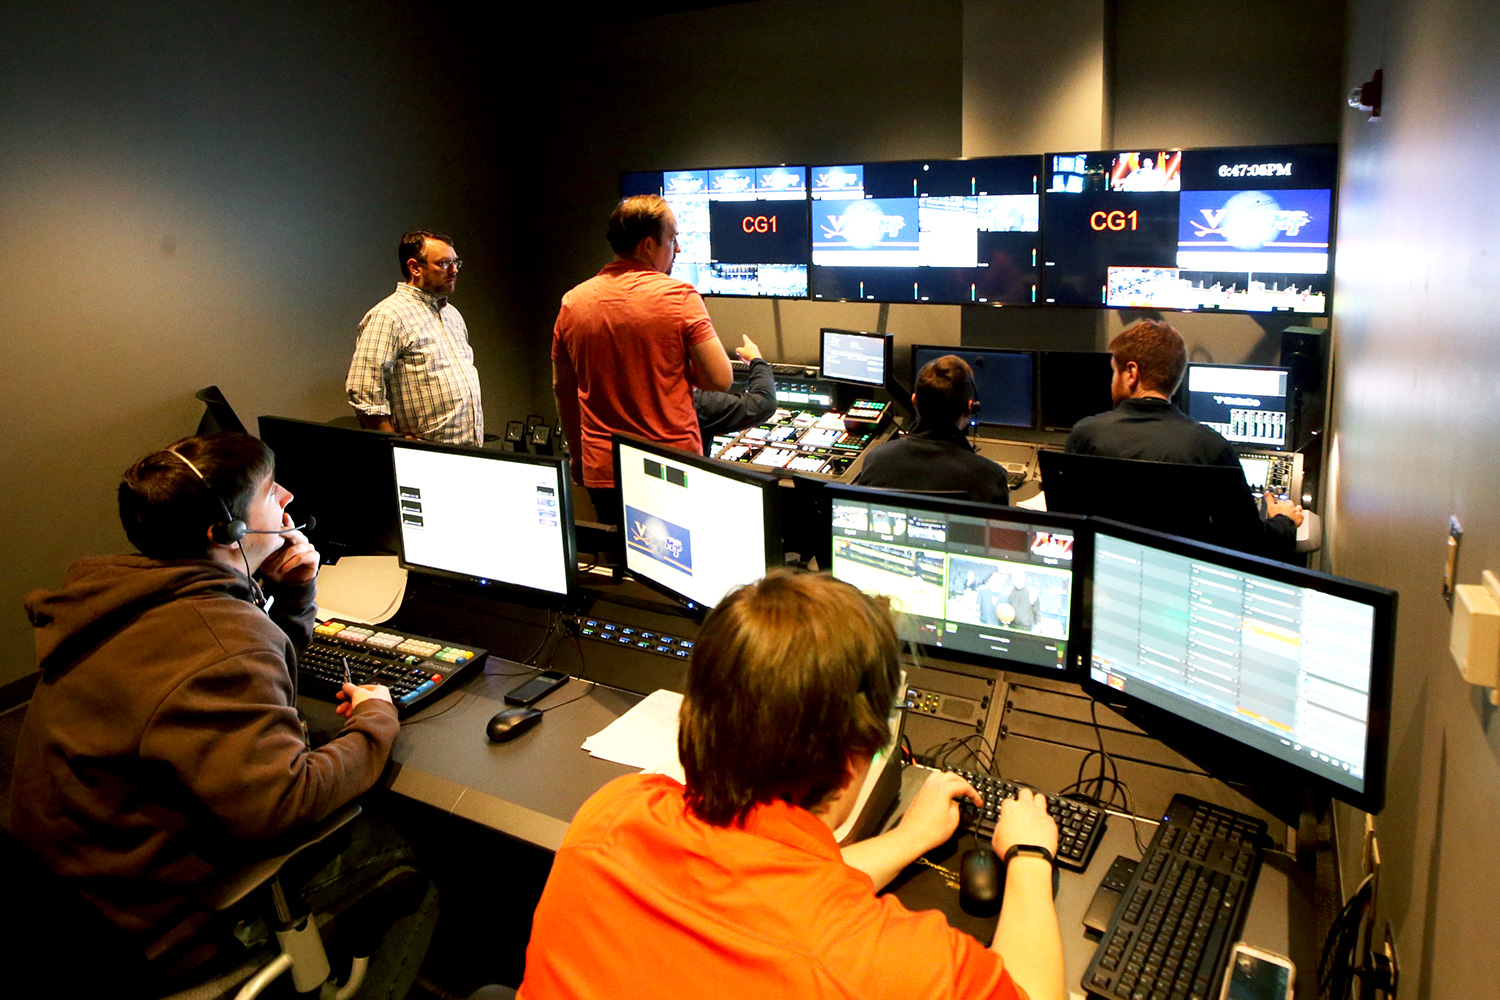 With the dawn of the ACC Network demanding greater video production capacity, Athletics has set up a control room that can produce three high-definition games at a time.